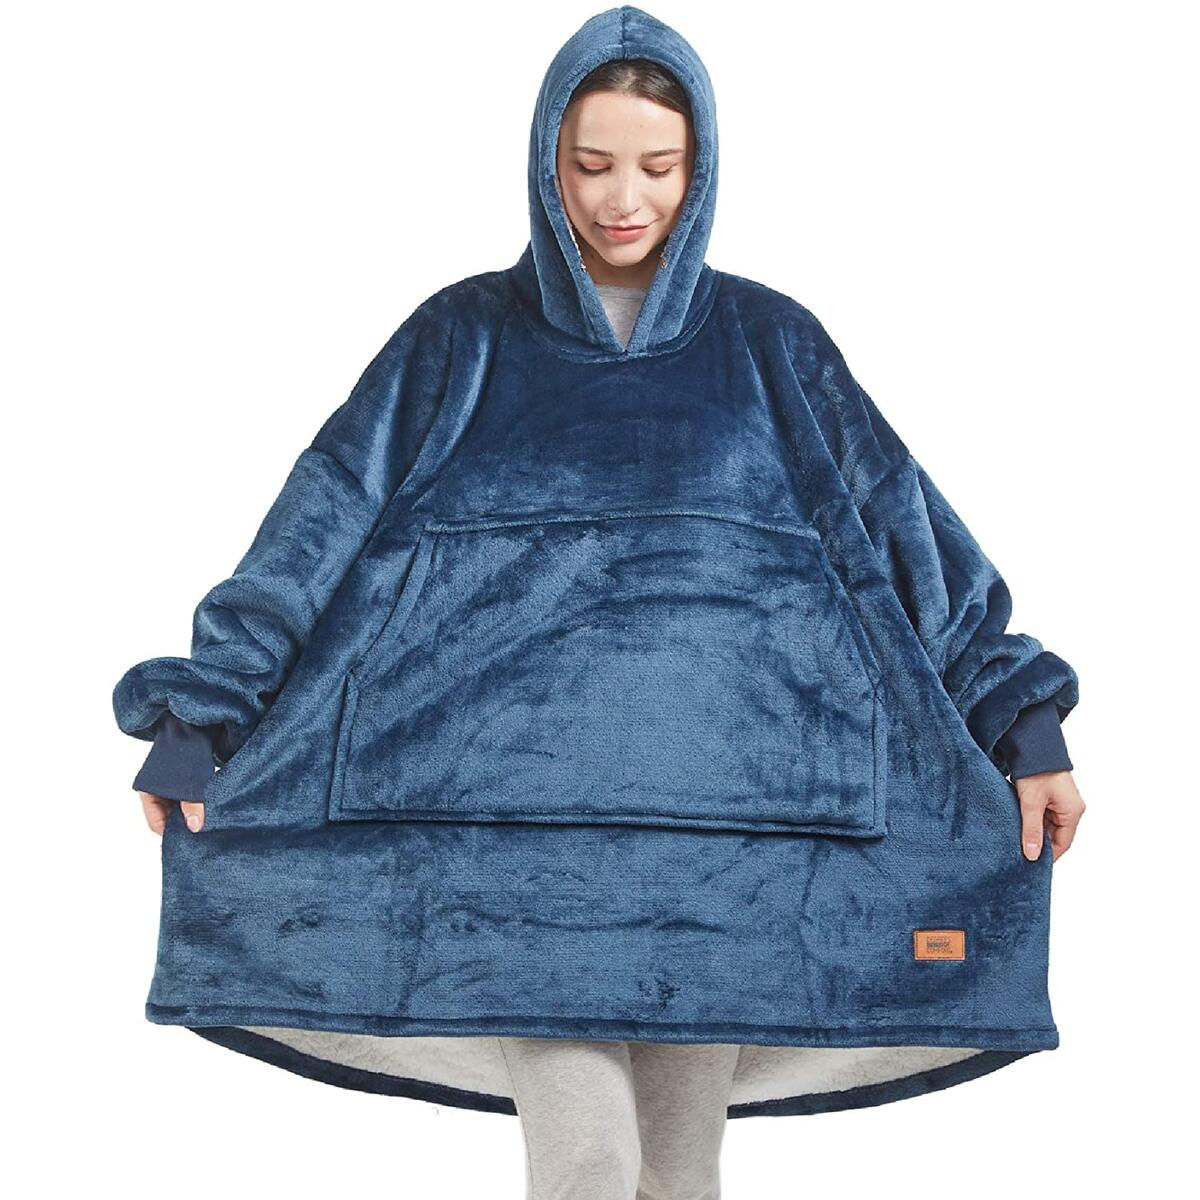 ADULT SIZE ONLY any color [Degrees Of Comfort] Blanket Hoodie Women & Men | Cool Birthday Gifts Ideas, Soft Microfiber Fleece and Fuzzy Sherpa Wearable Blanket Sweatshirt for Camping, One Size Fits All, Any Color ADULT SIZE ONLY